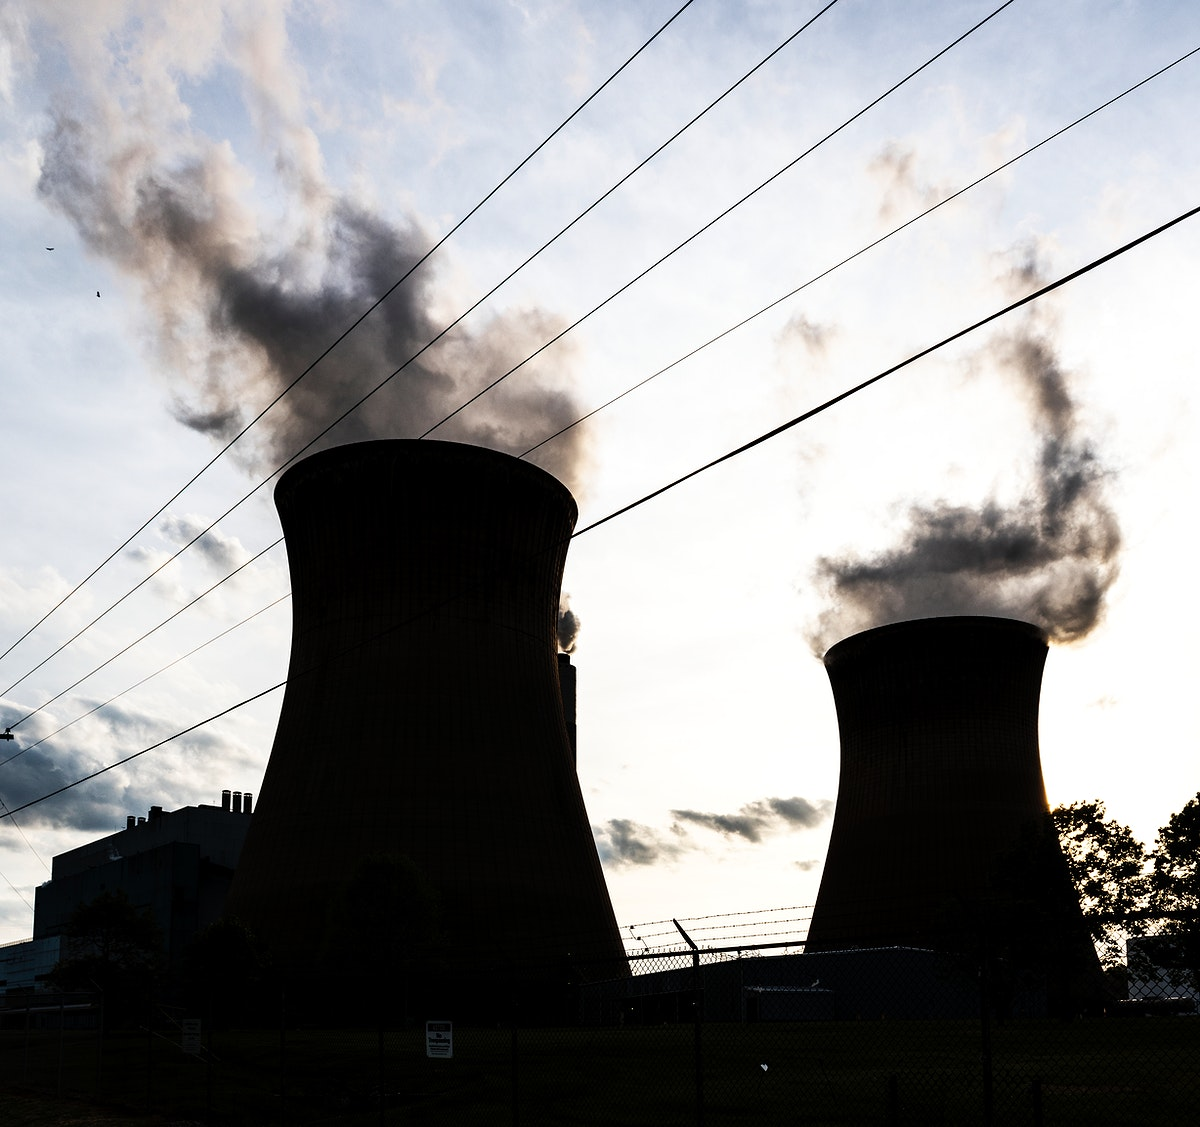 Nuclear plant. Original image from Carol M. Highsmith's America, Library of Congress collection. Digitally enhanced by…